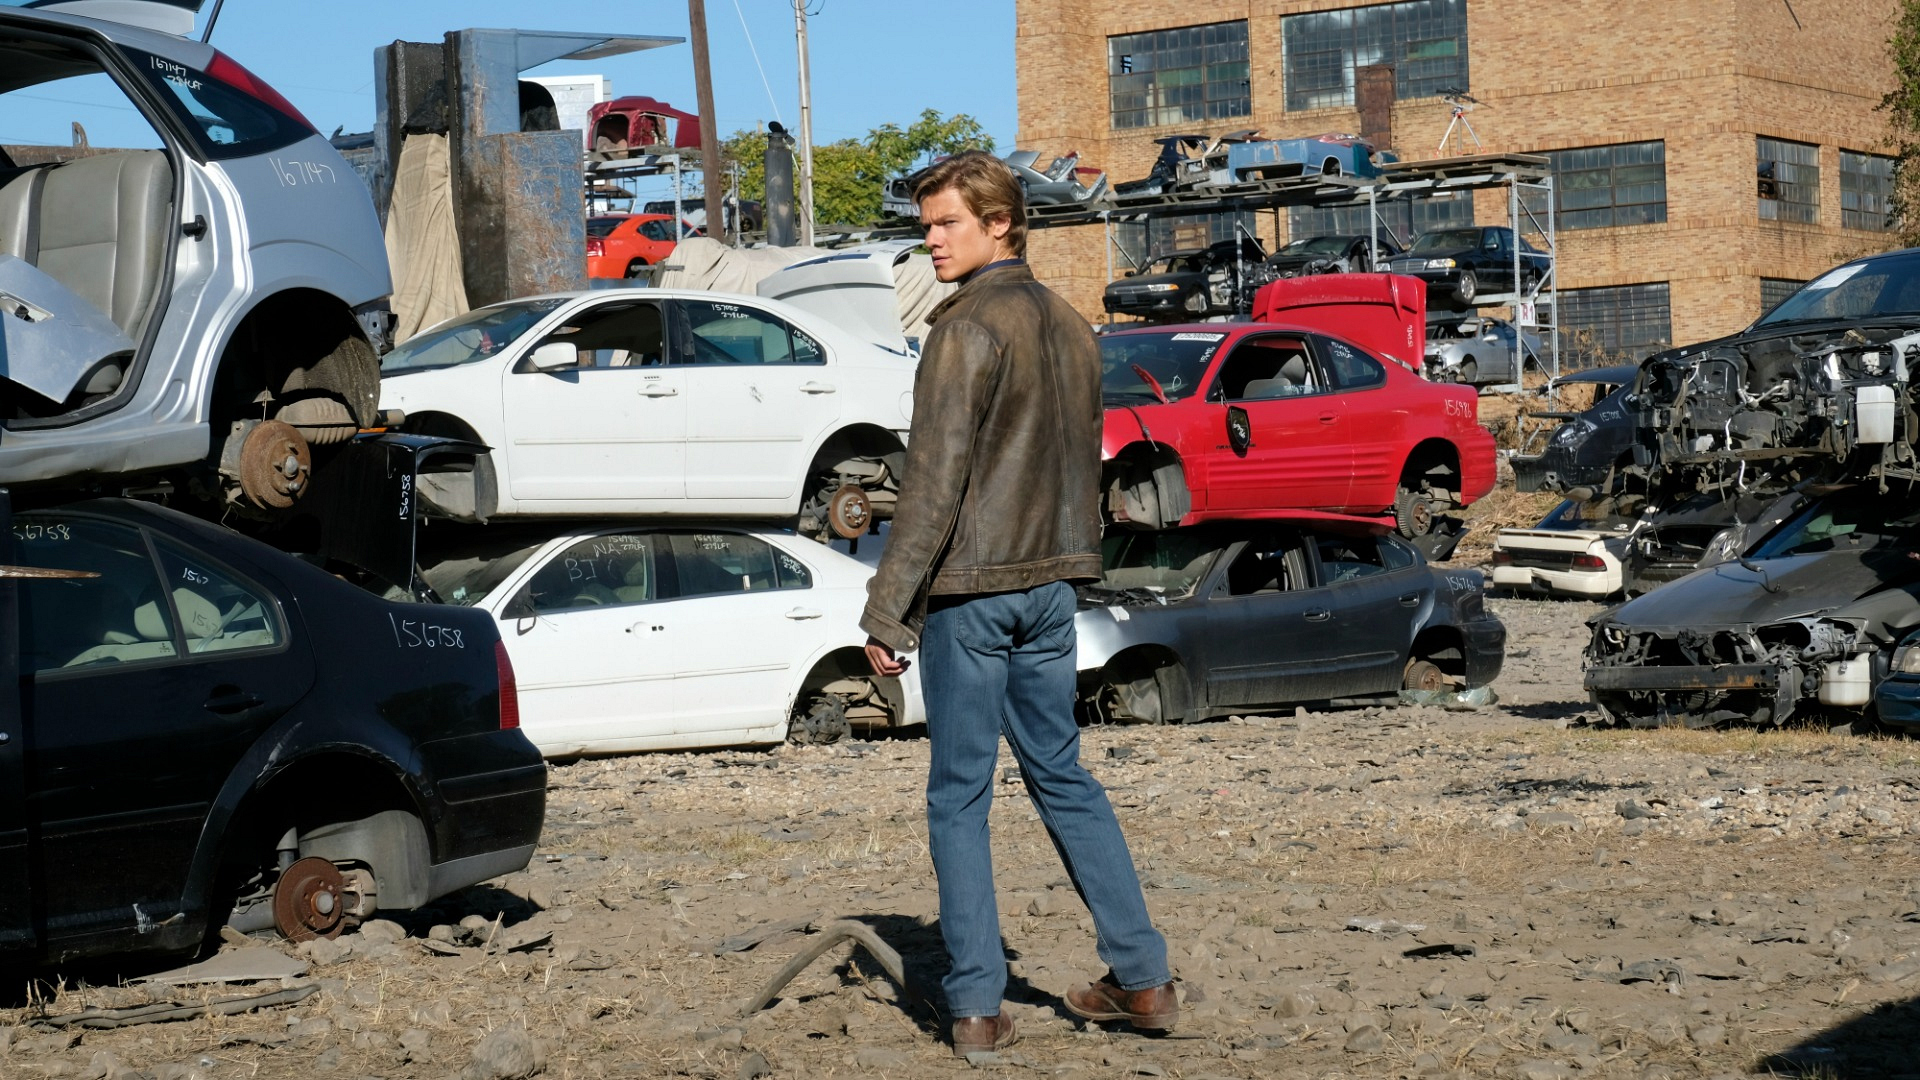 MacGyver surveys the junkyard.